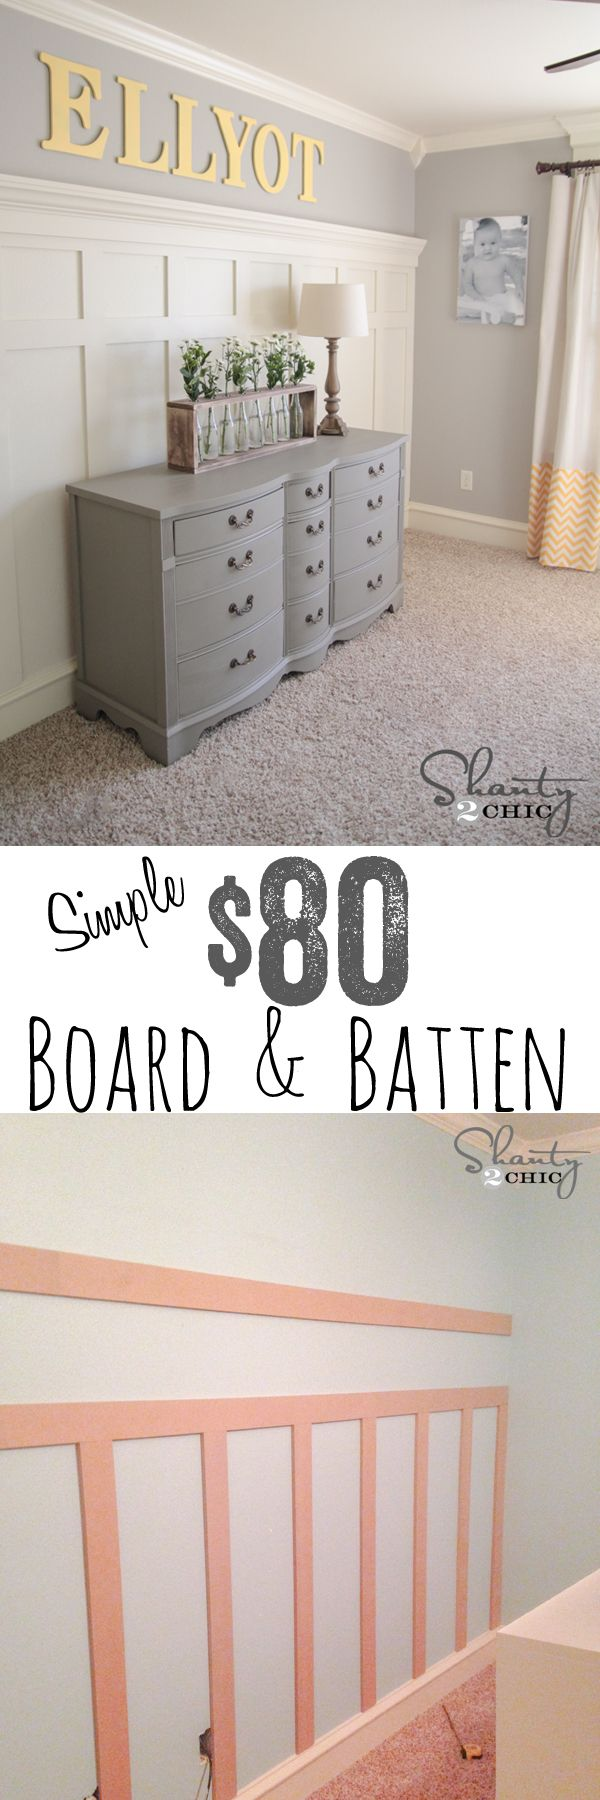 DIY Board & Batten wall tutorial